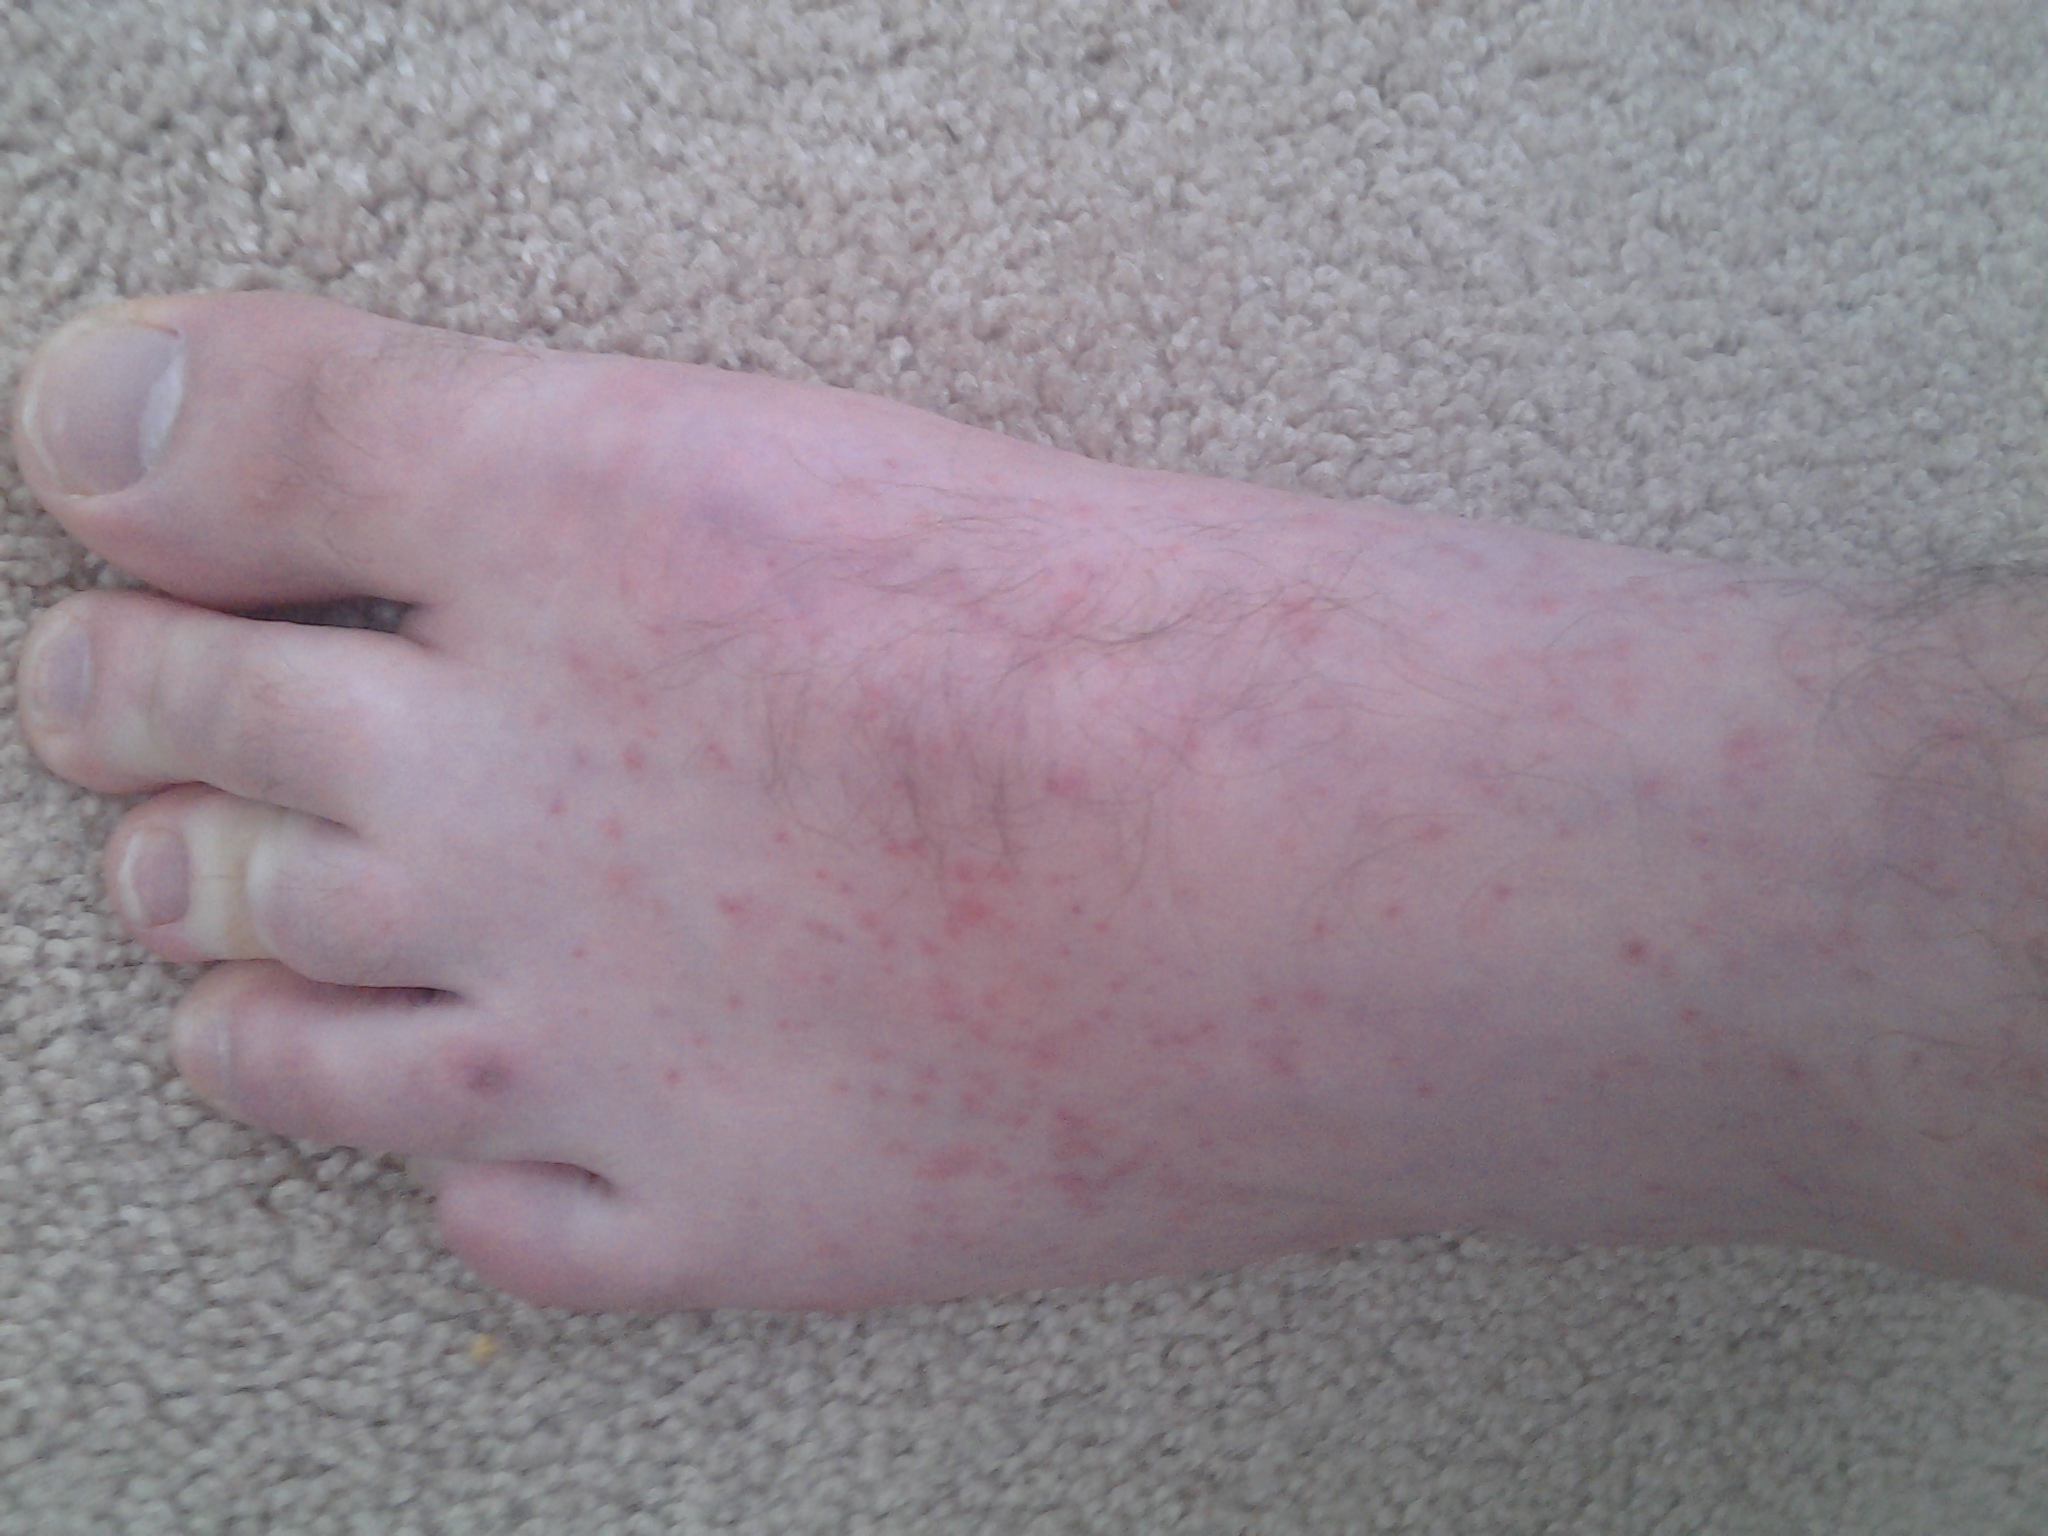 Red Spots on Foot Not Itchy Red Non Itchy no Bump Spots